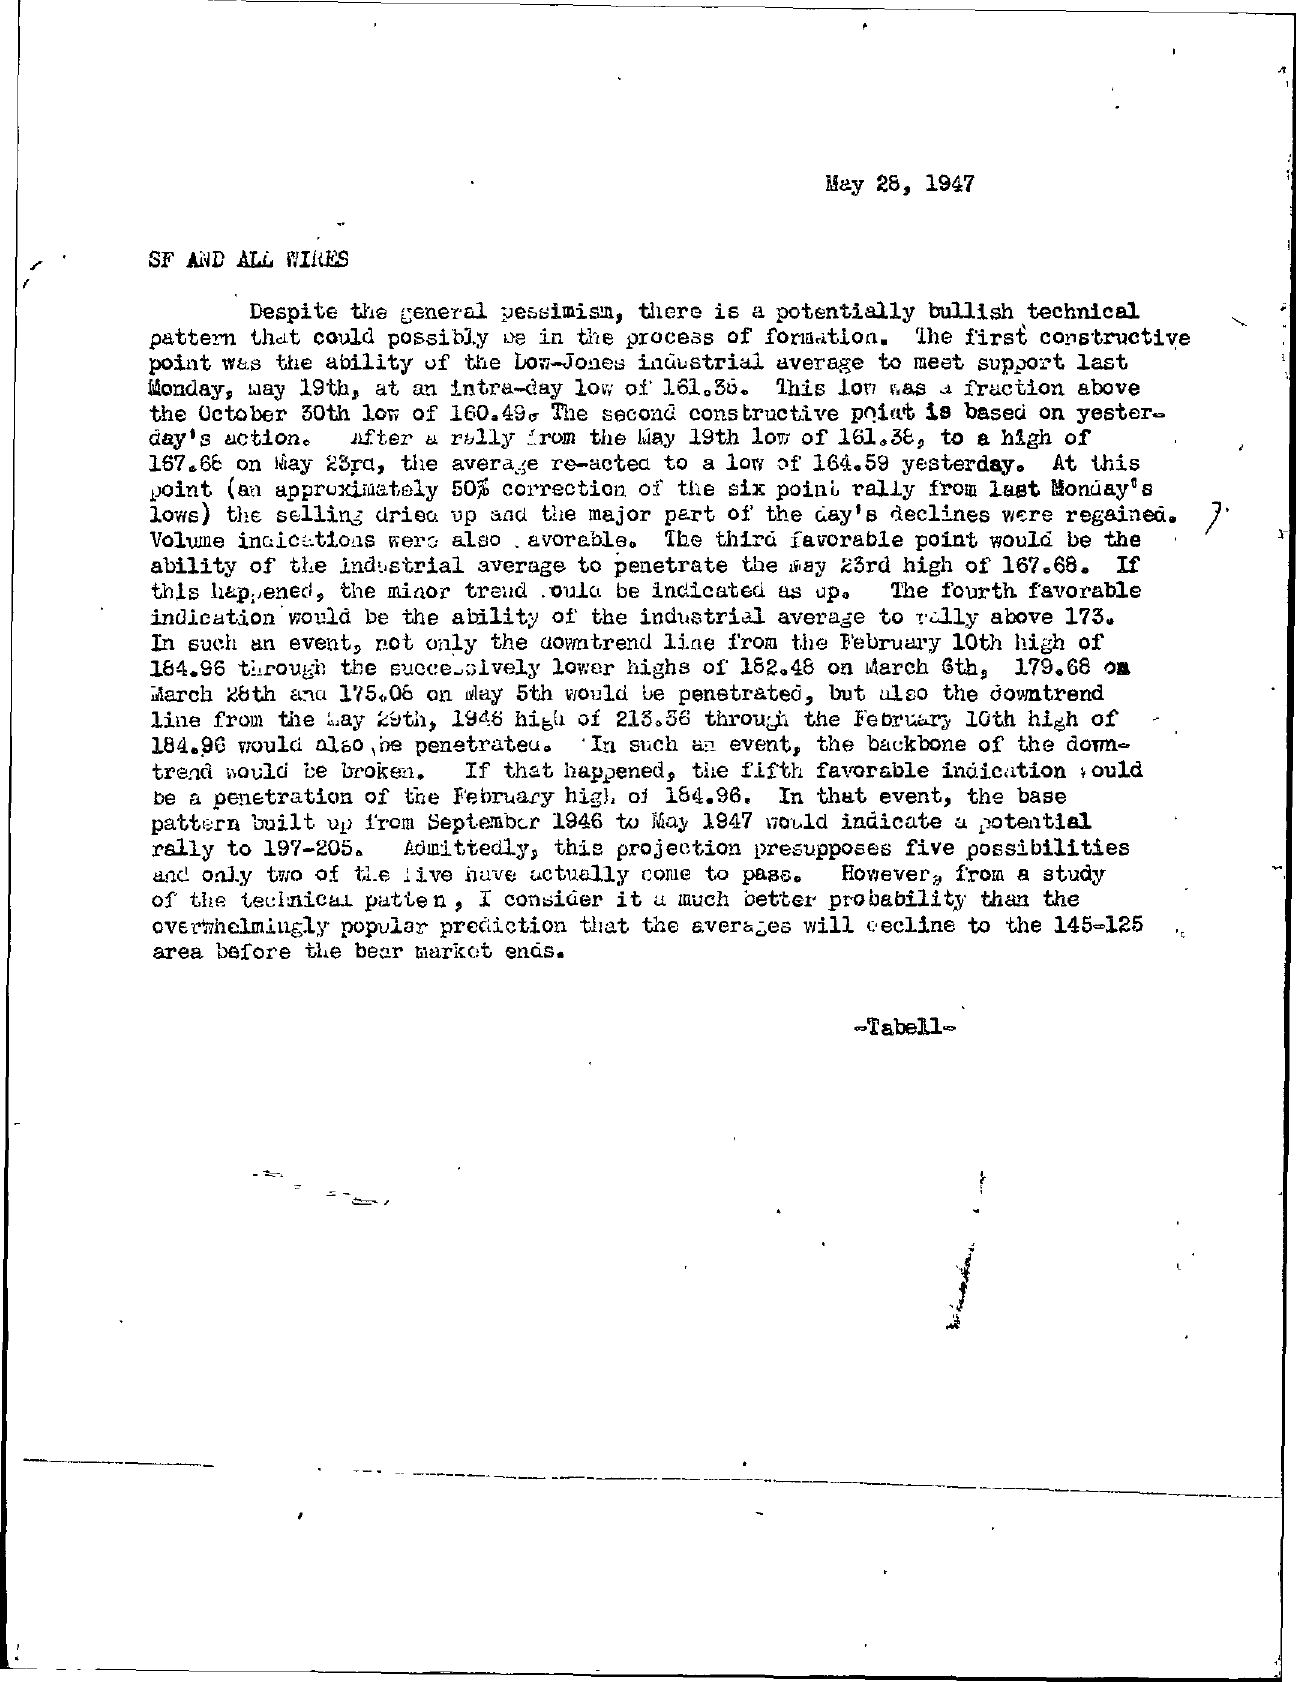 Tabell's Market Letter - May 28, 1947 page 2